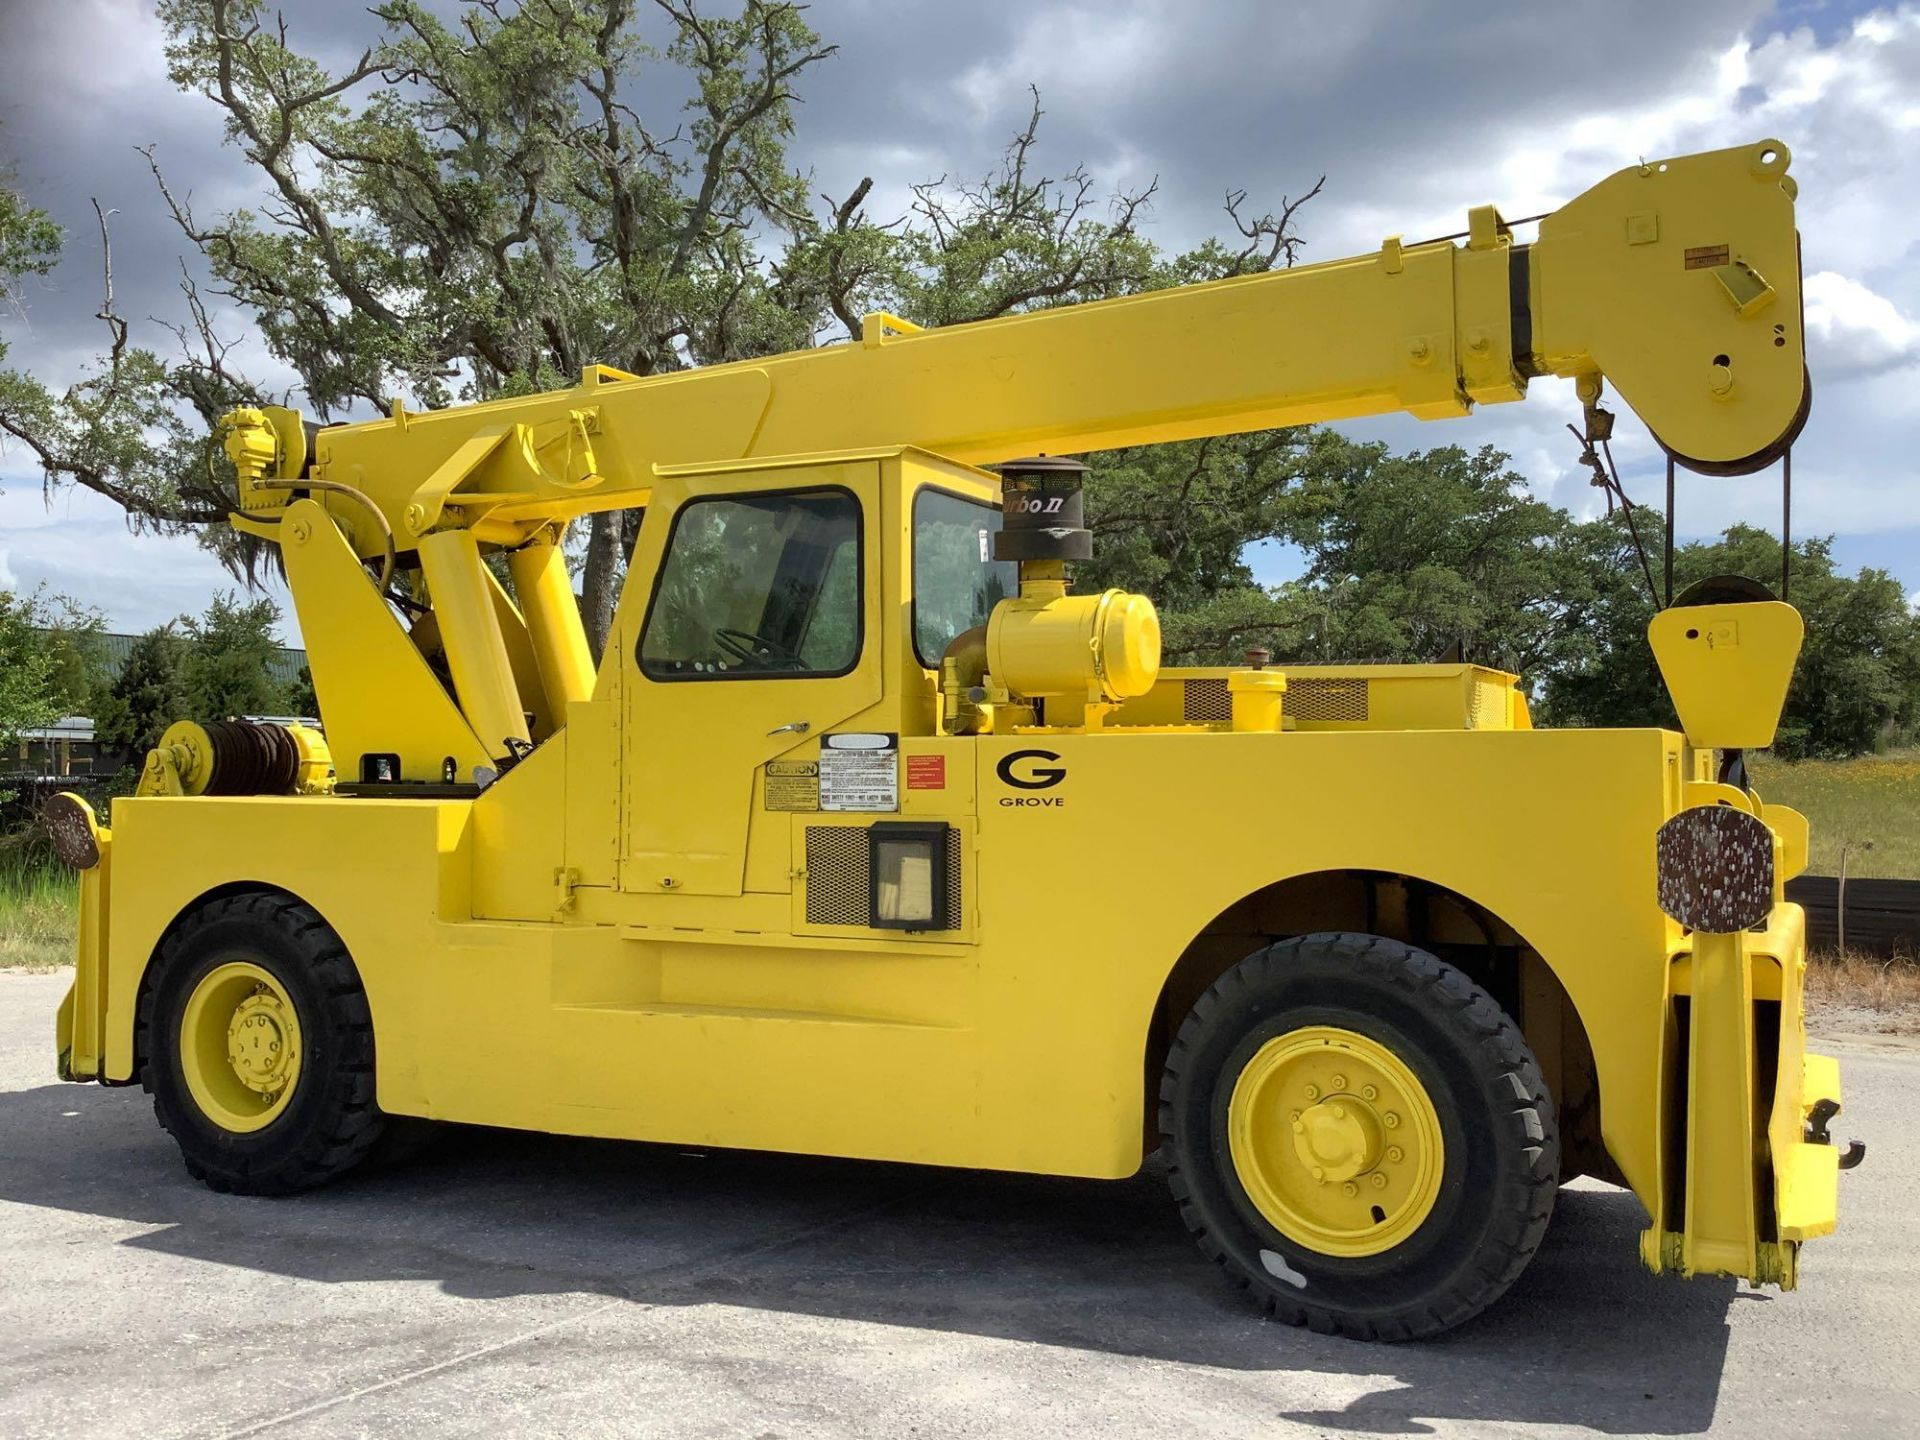 GROVE TRUCK CRANE MODEL IND1012, HYDRAULIC, TELESCOPIC, DIESEL,OUTRIGGER, RUNS AND OPERATES - Image 9 of 18